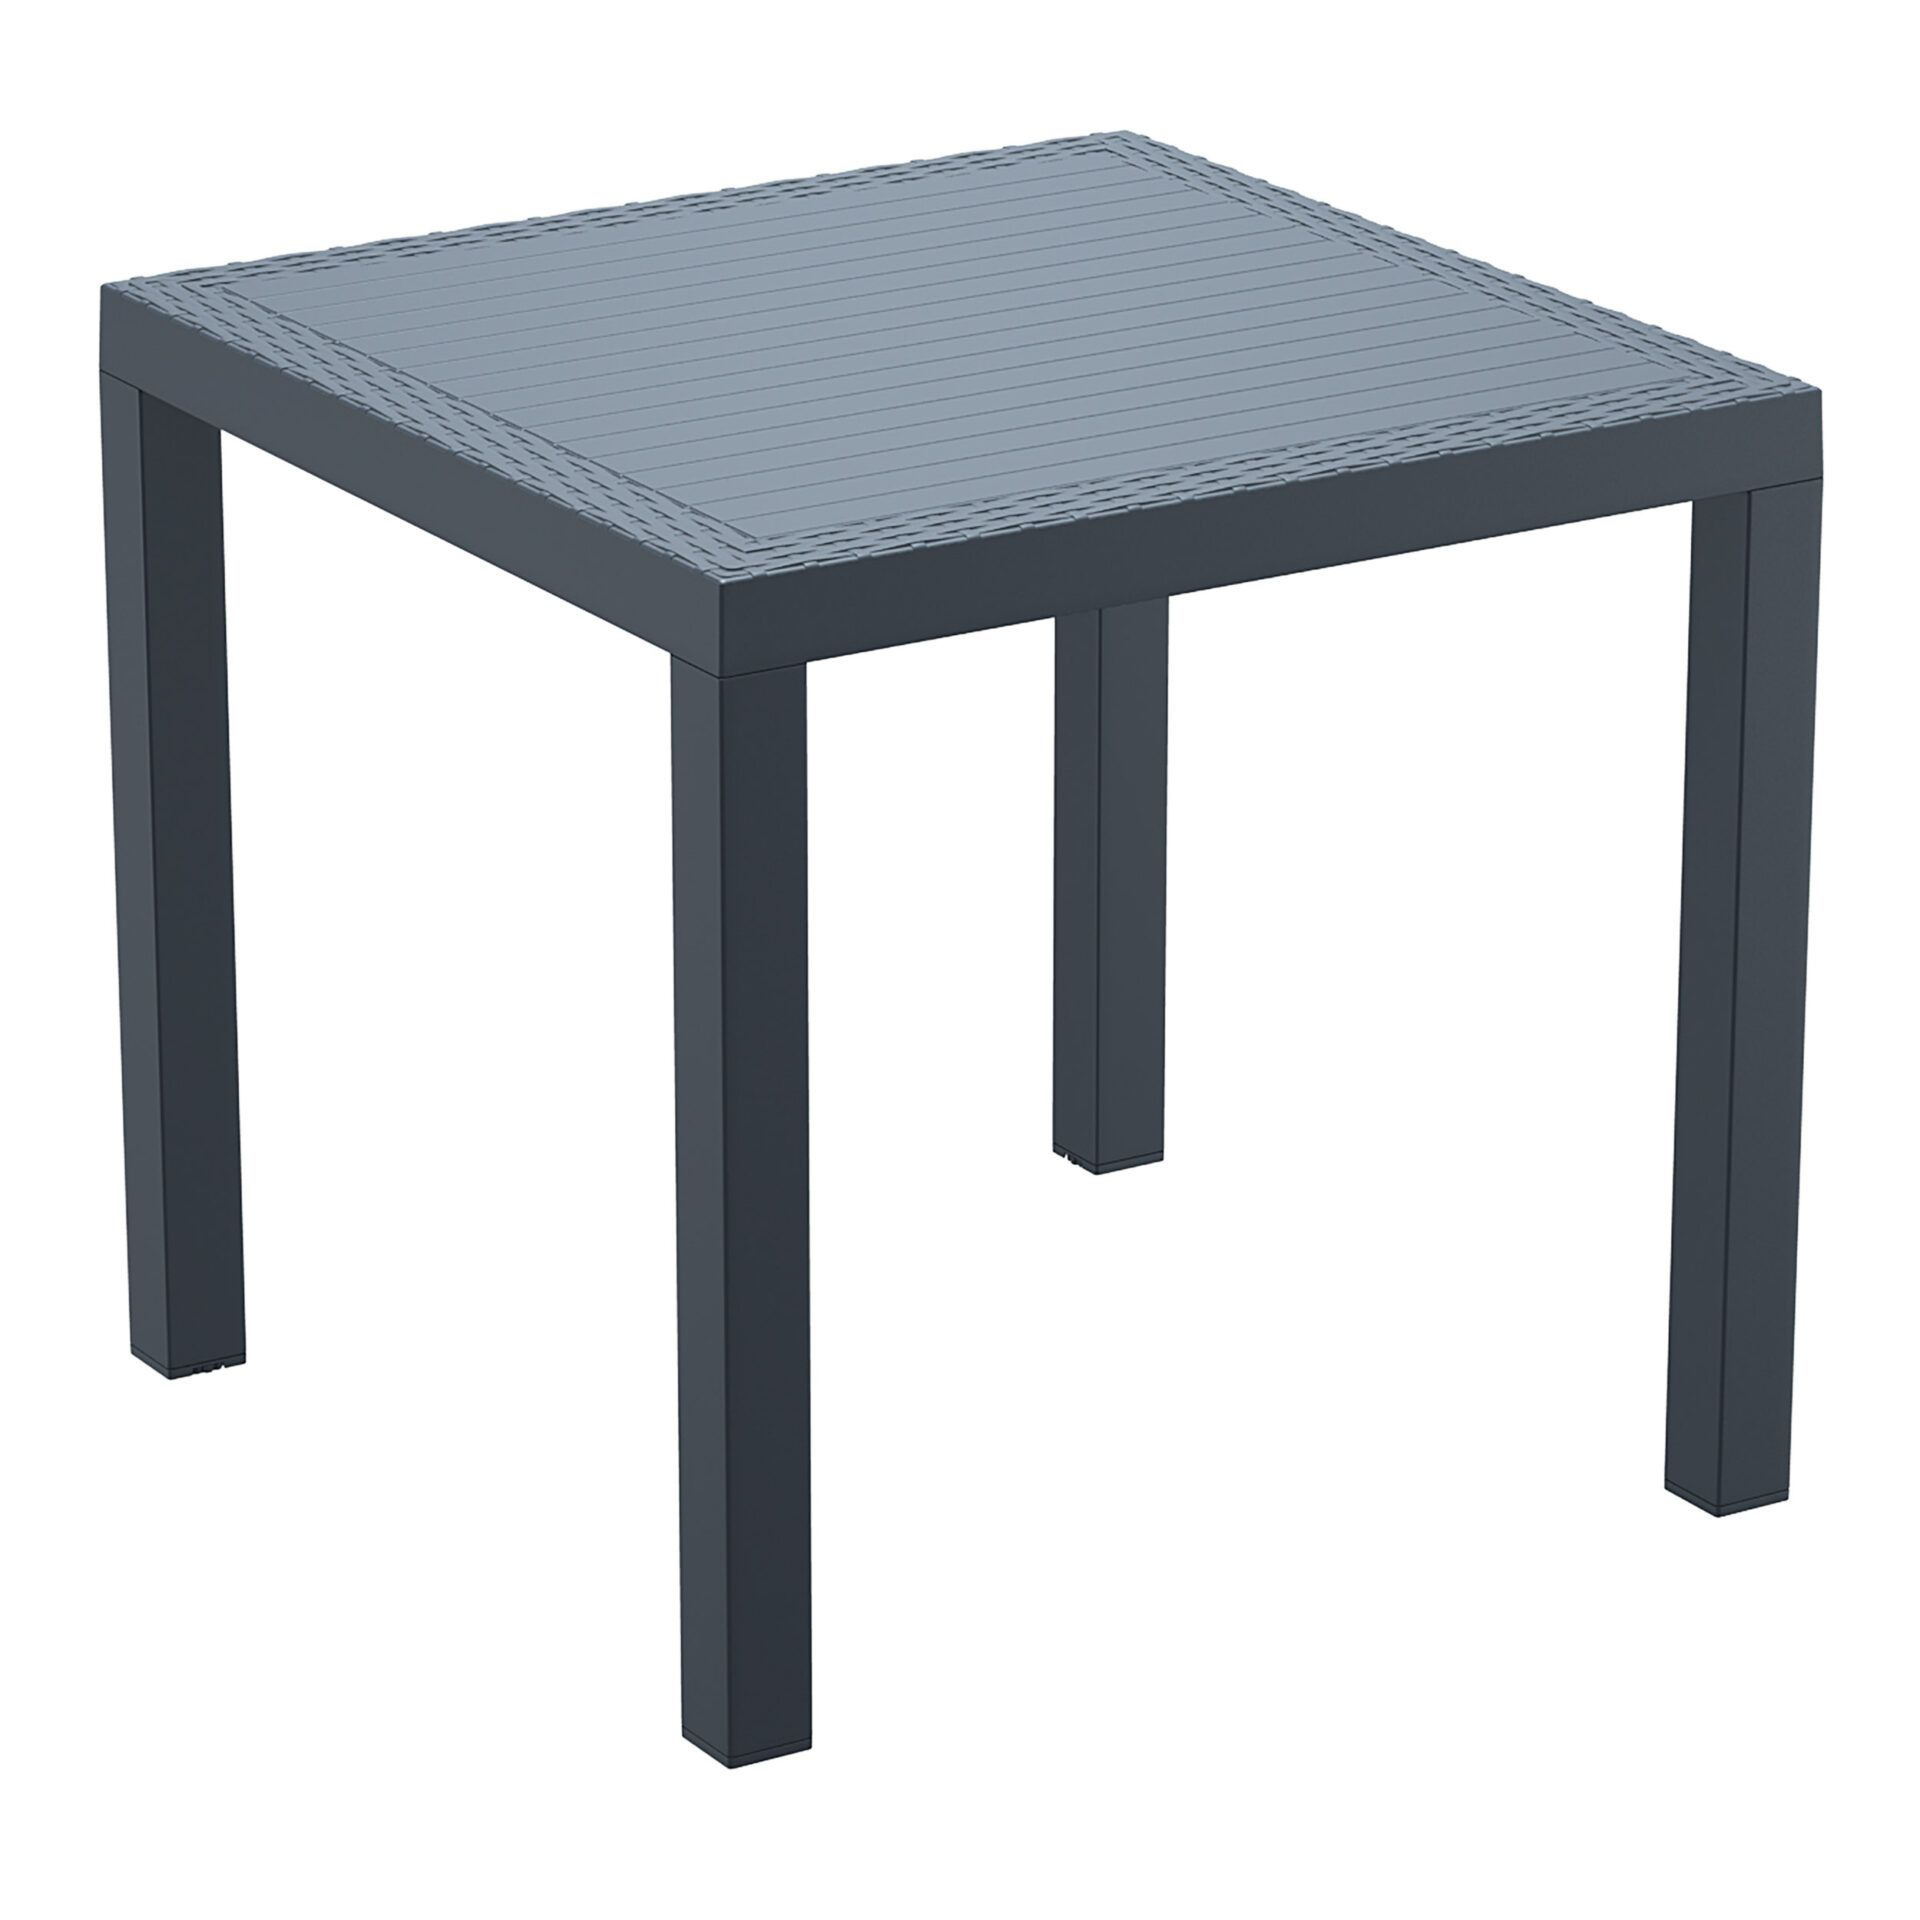 outdoor resin rattan cafe plastic top bali table 80 darkgrey front side